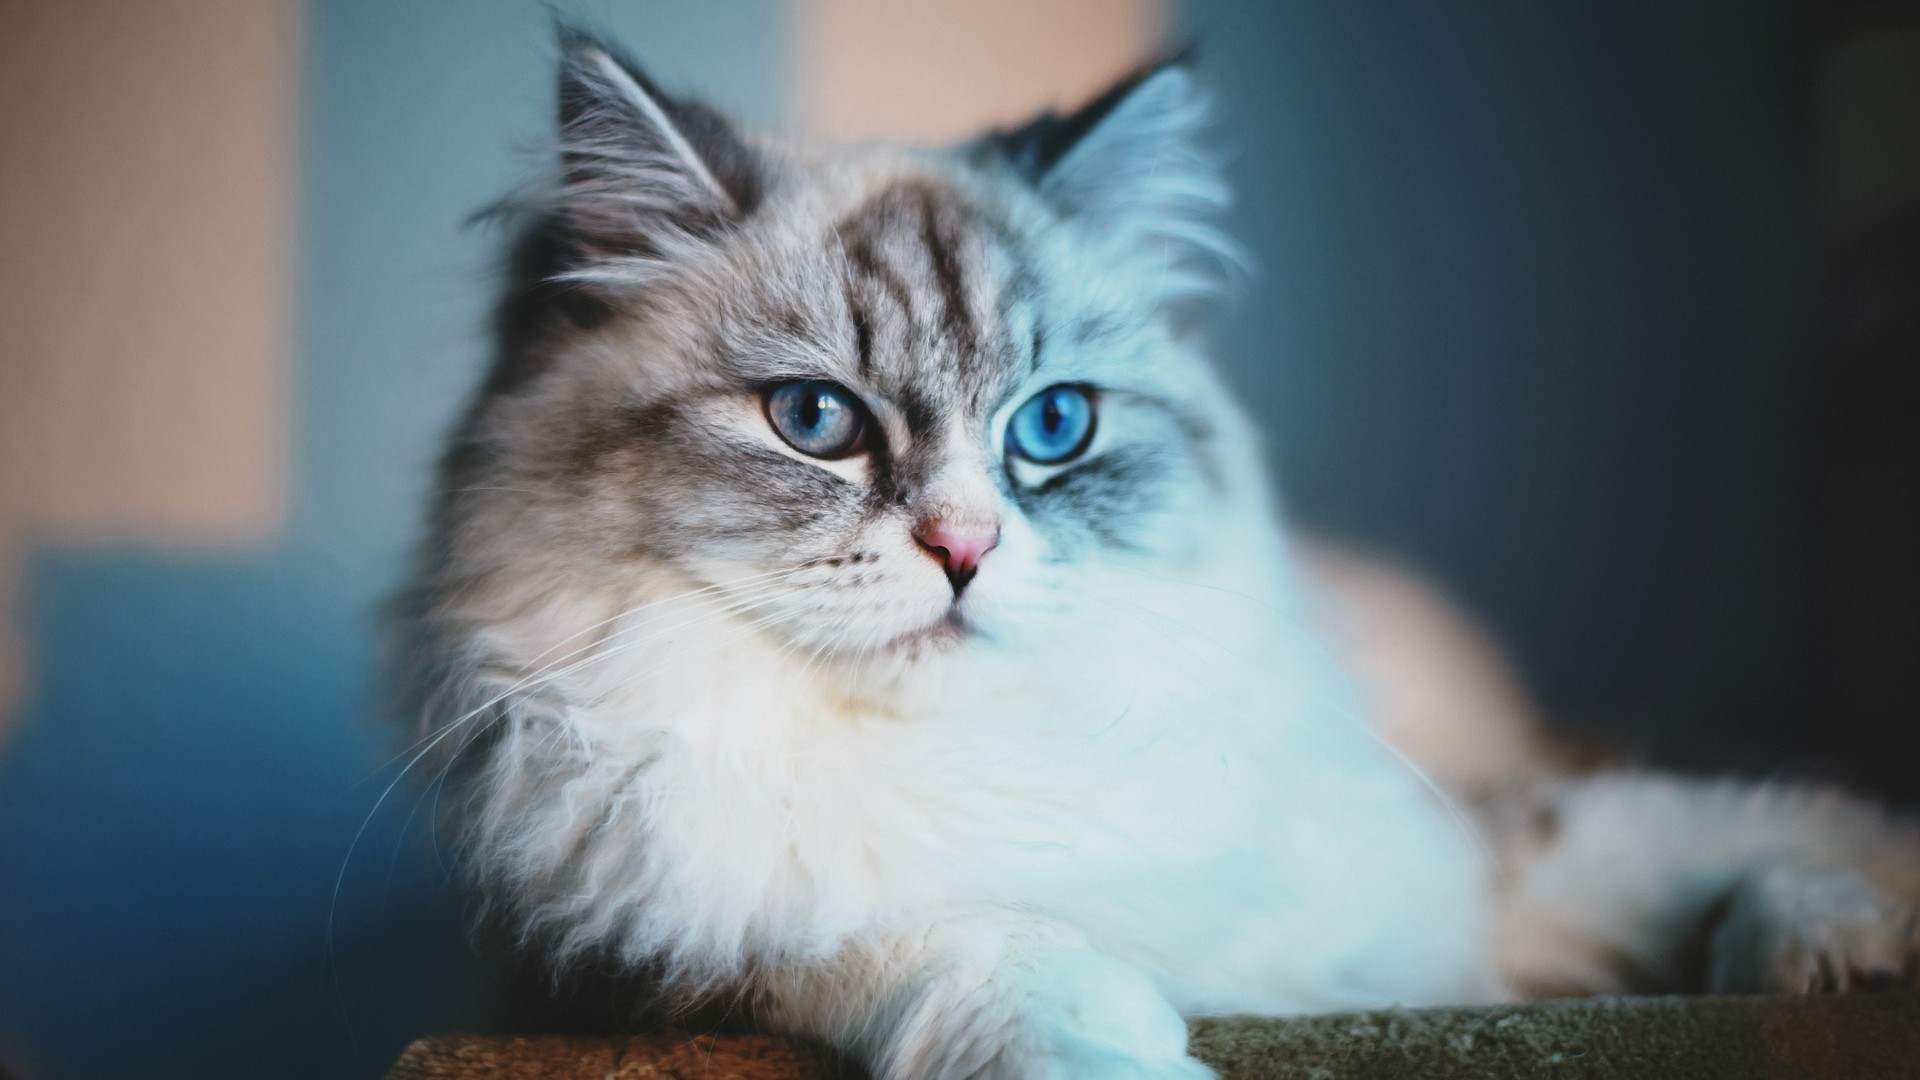 Sweet And Cute Wallpapers For Mobile Blue Cat Meow Wallpaper Allwallpaper In 5678 Pc En